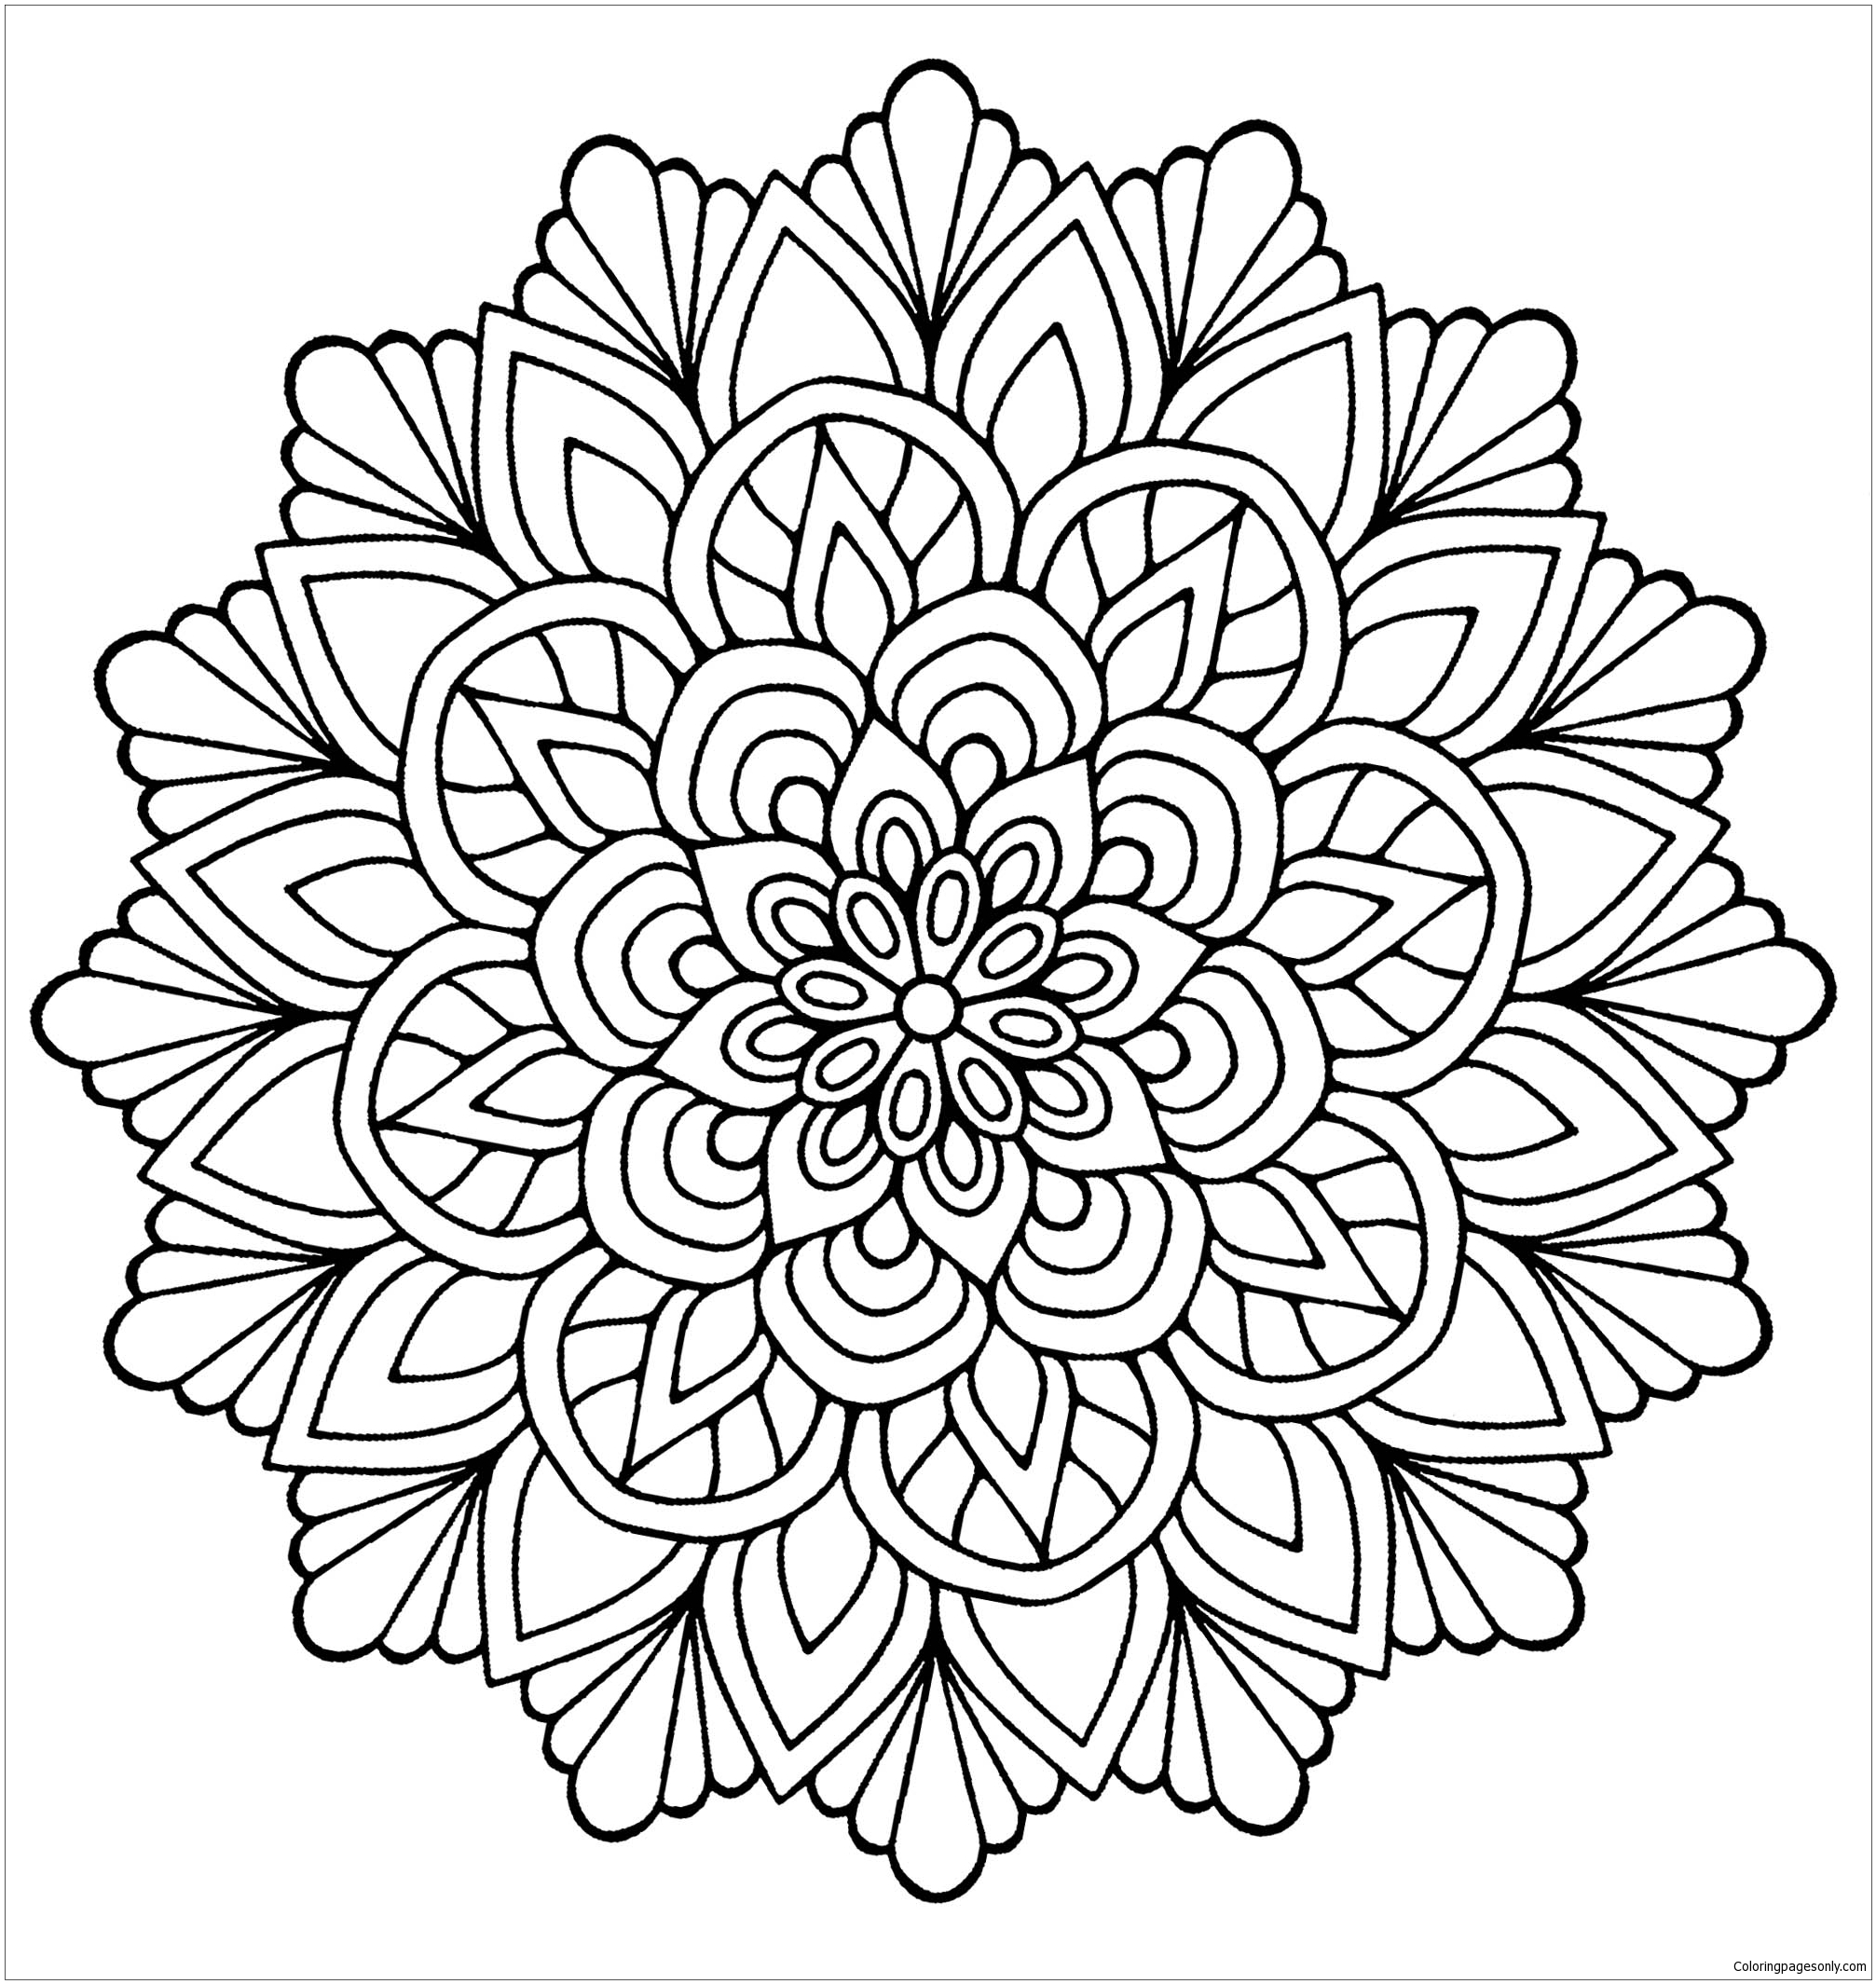 Mandala Flower With Leaves Coloring Page Free Coloring